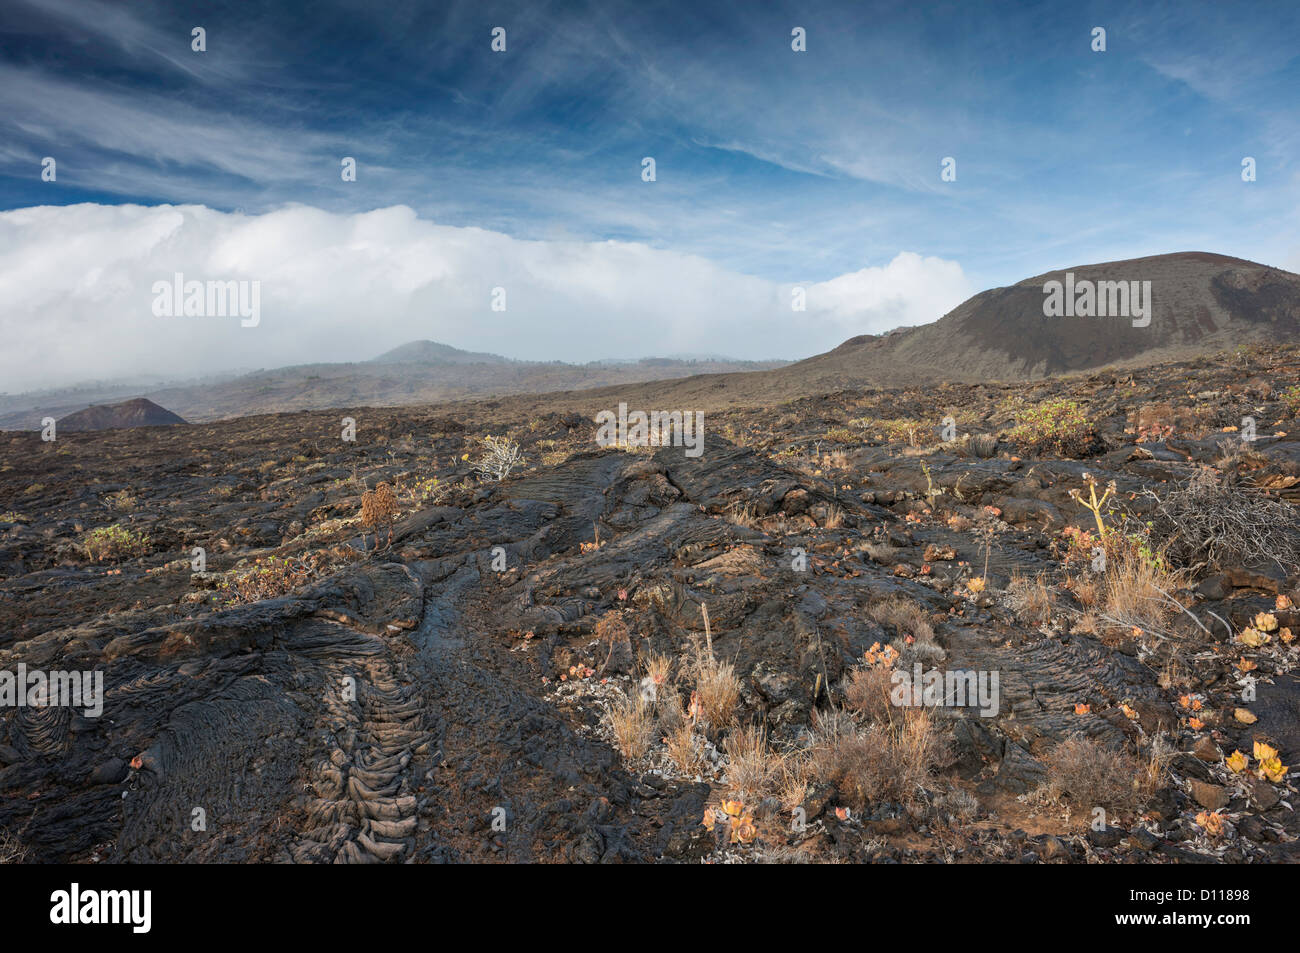 Pahoehoe (ropy) lava flows at Tacoron on the south coast of El Hierro, Canary Islands - Stock Image